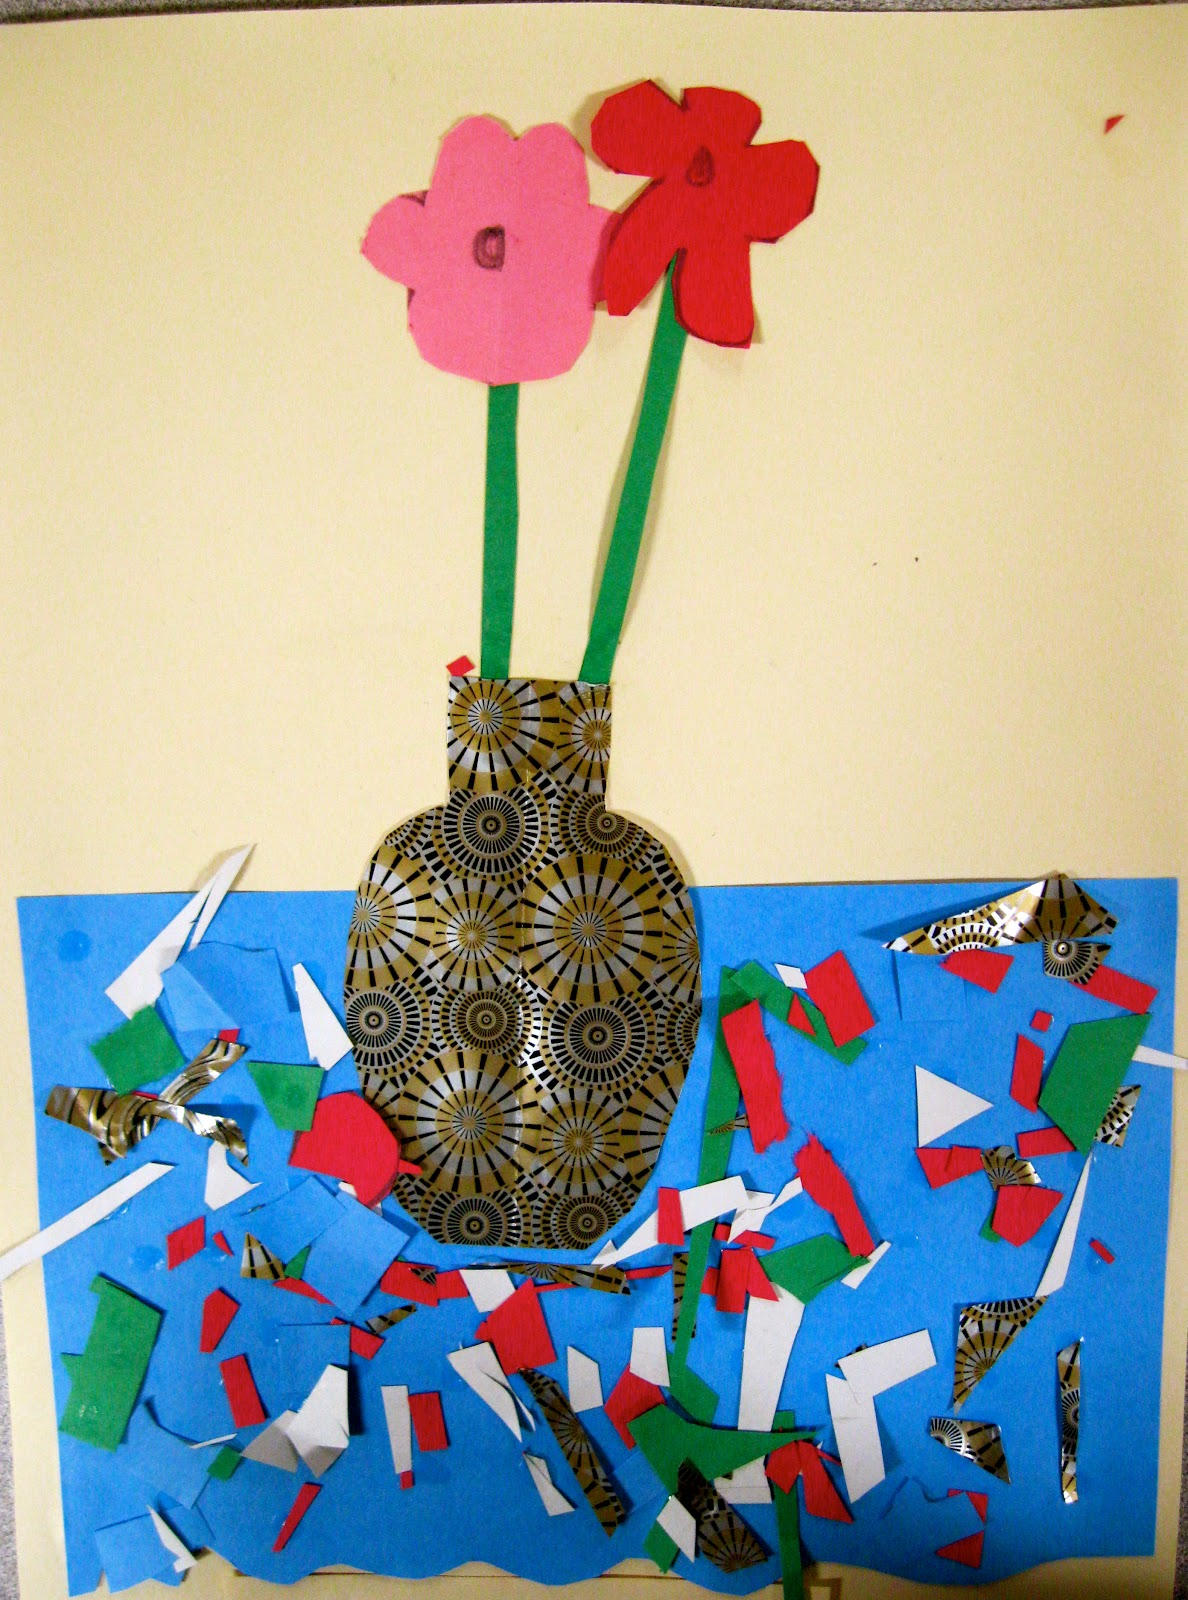 Table Of 4 Angie Villa Art & Education: Still Life Collage- 4th Grade